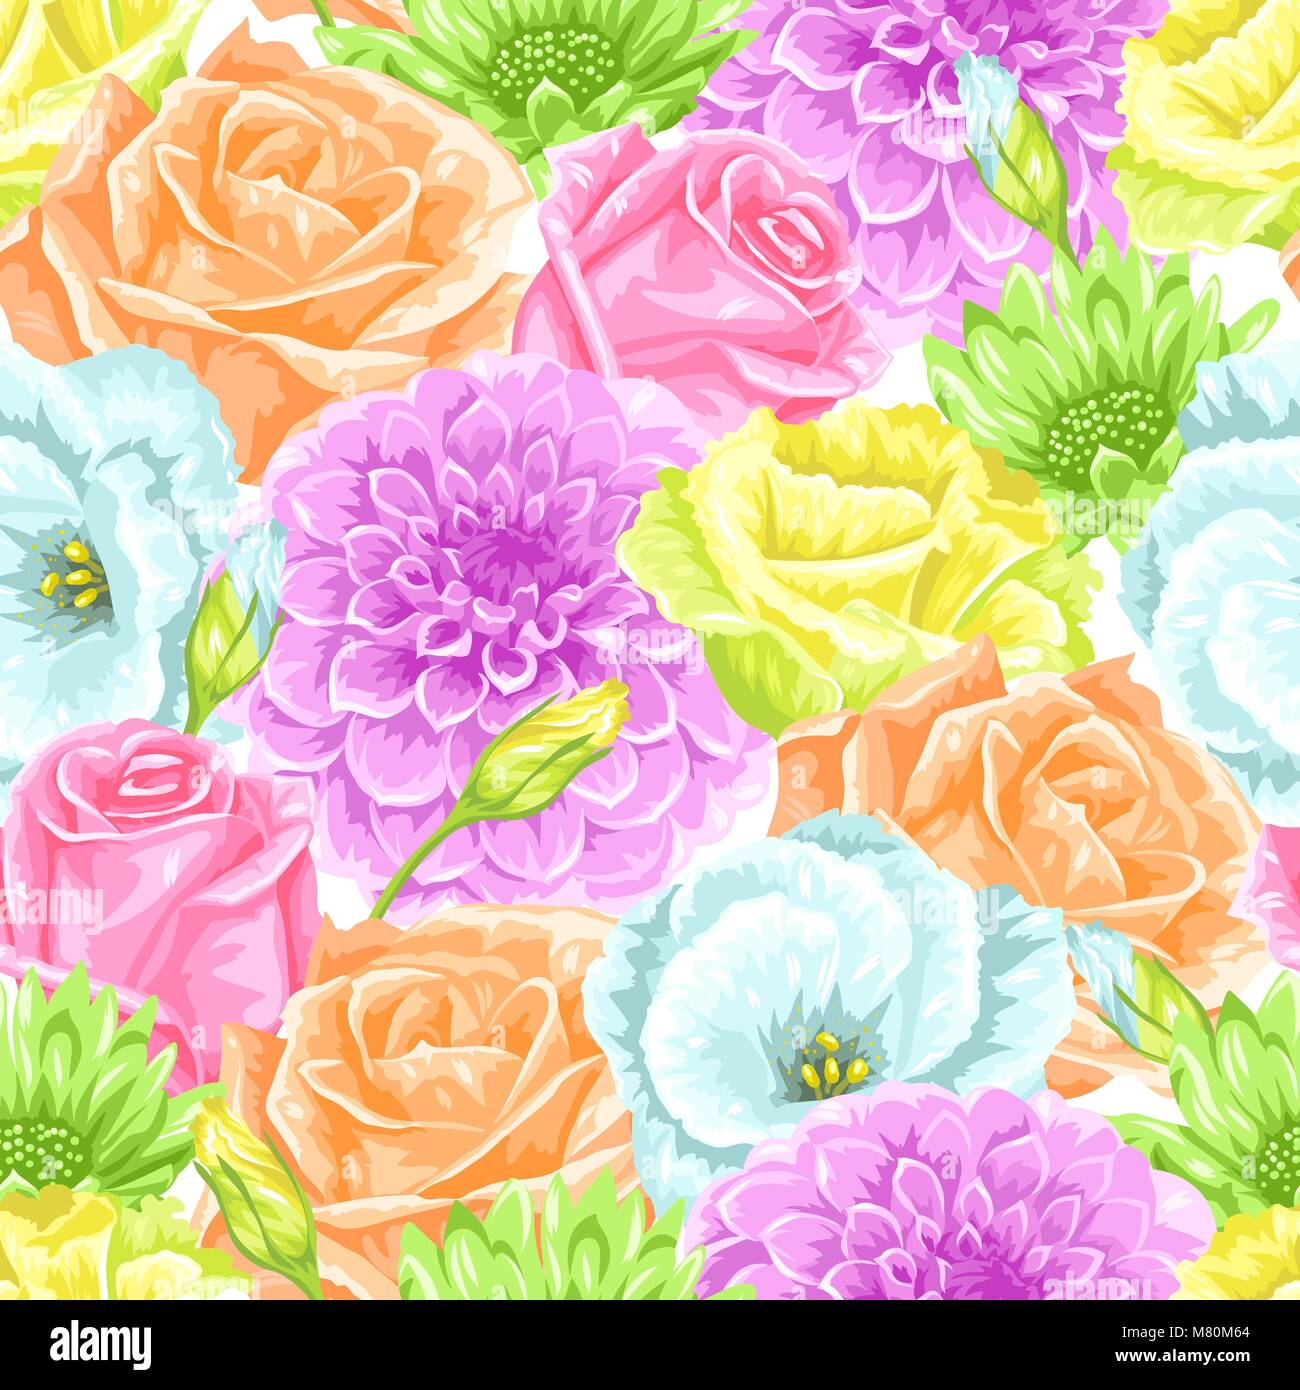 Seamless pattern with decorative delicate flowers easy to use for seamless pattern with decorative delicate flowers easy to use for backdrop textile wrapping paper wallpaper mightylinksfo